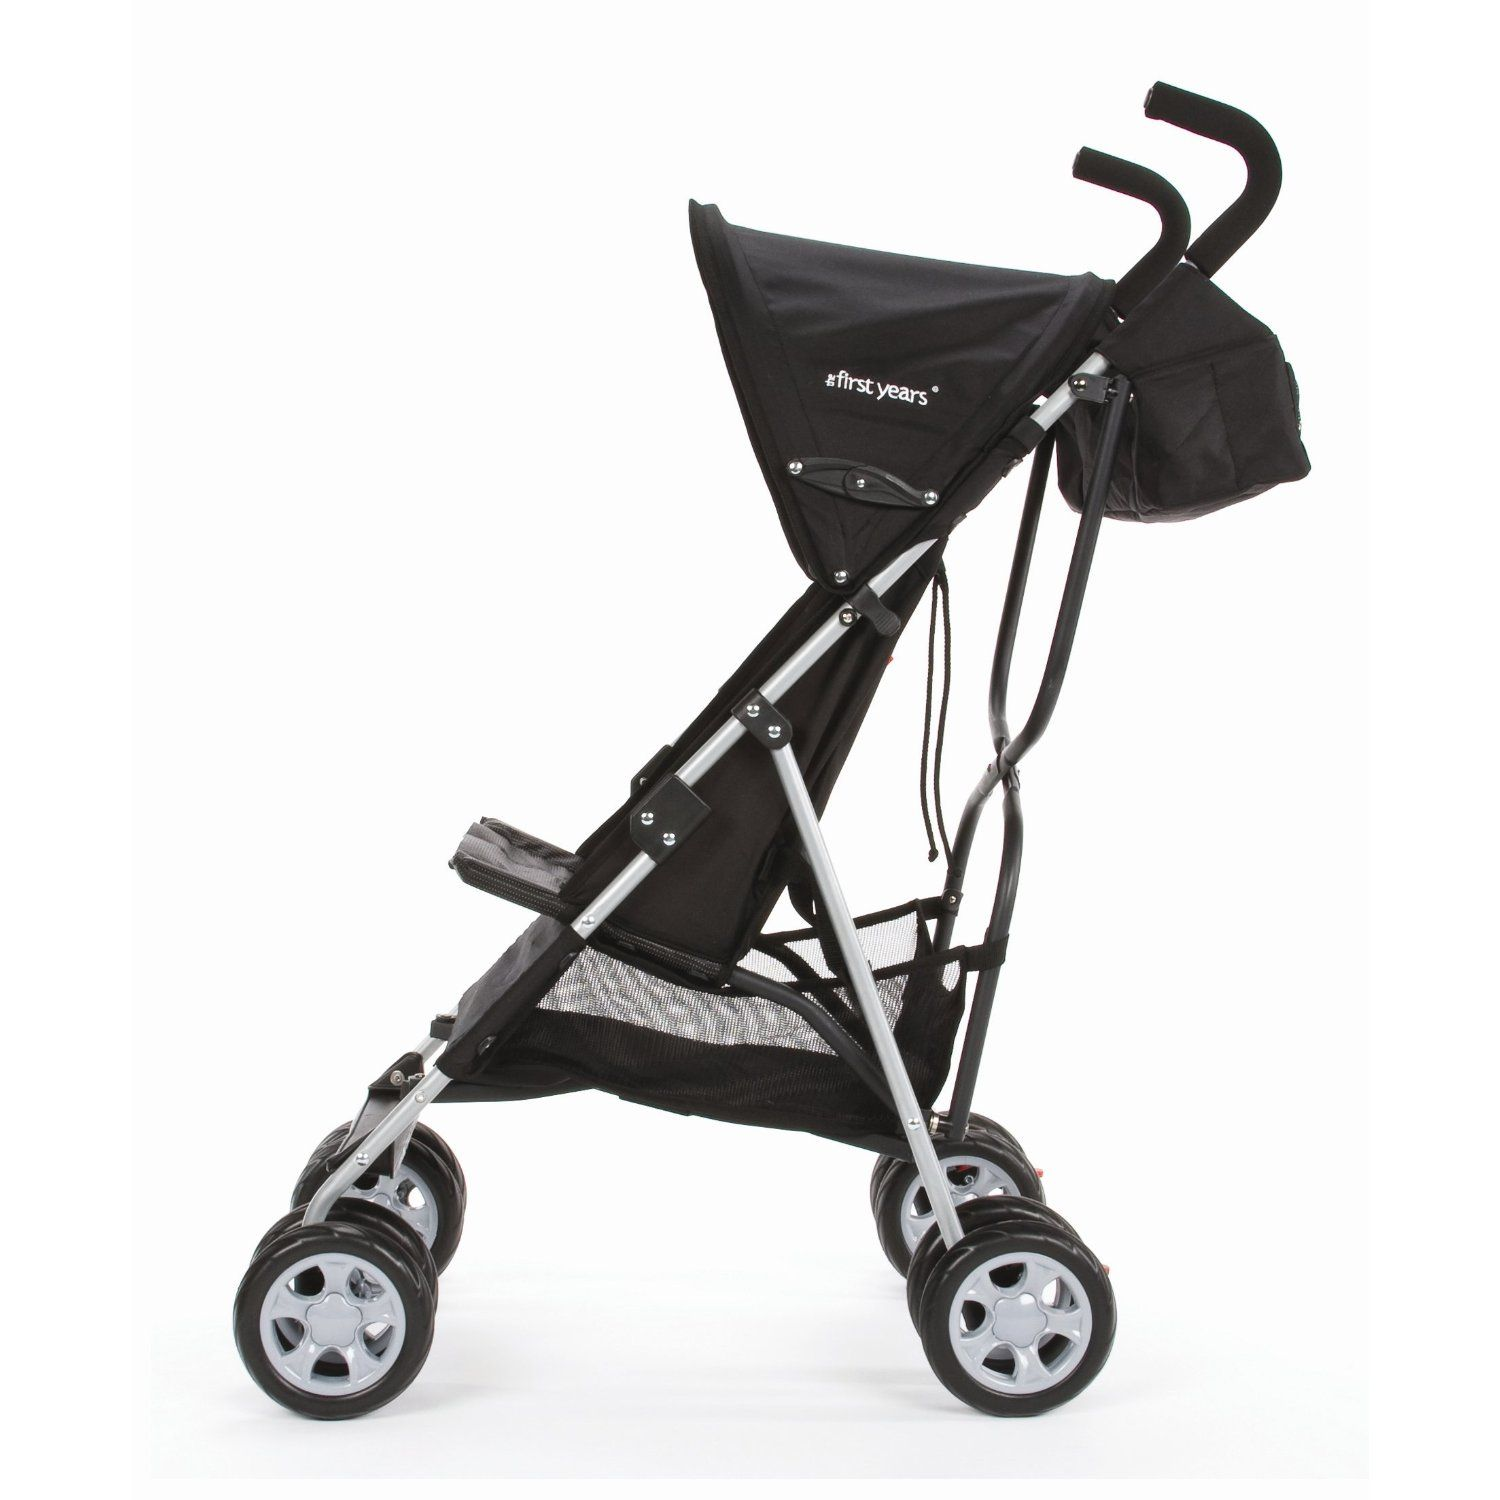 The First Years Jet Stroller Baby Stroller Sale 2012